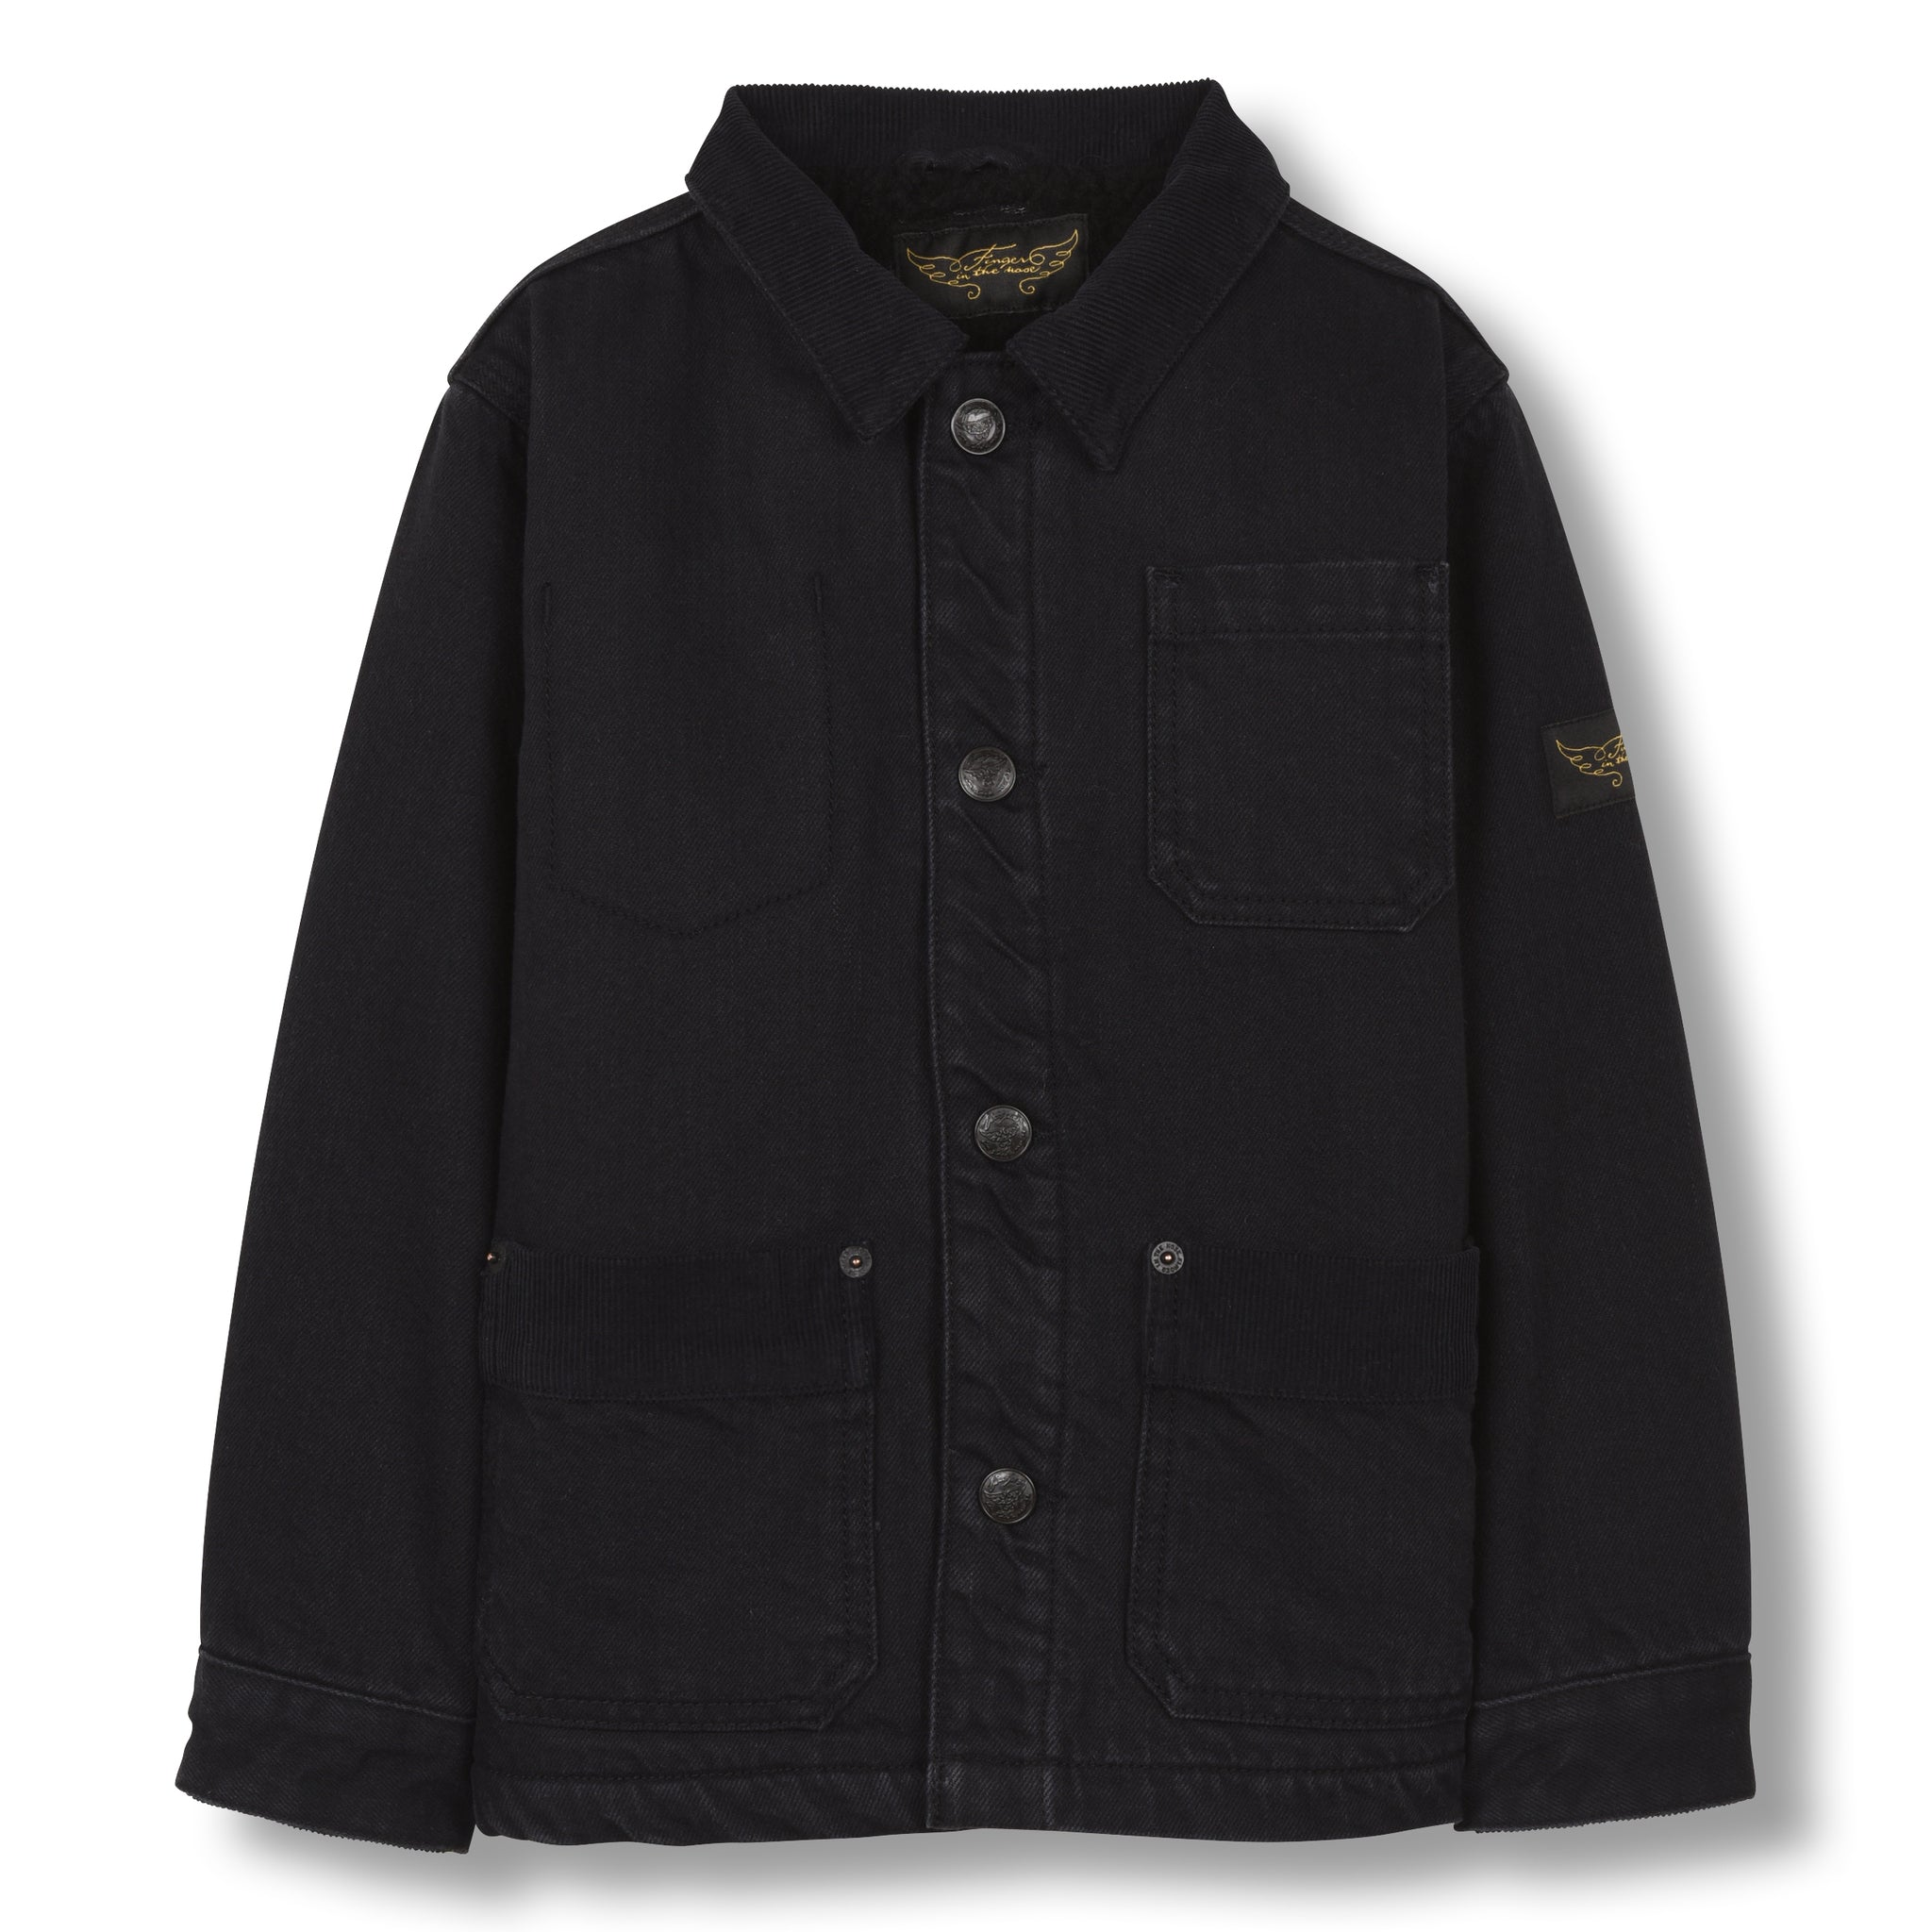 WARREN Black Denim - Multipocket Worker Jacket 1